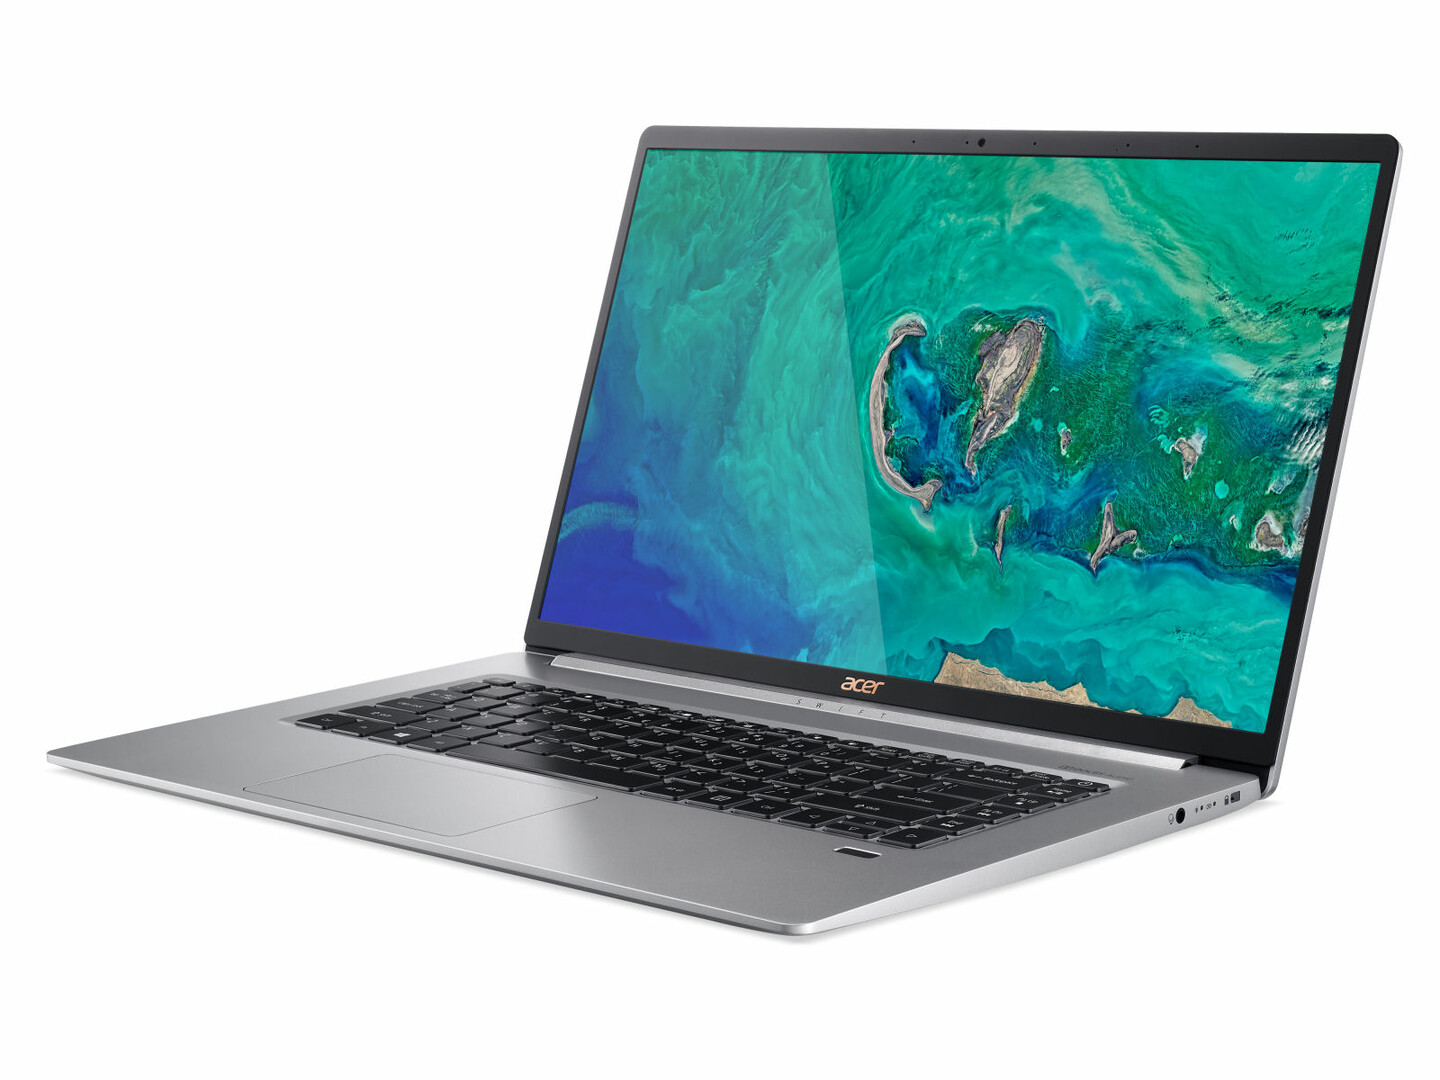 Acer Swift 5 SF515-51T (i7-8565U, SSD, FHD) Laptop Review